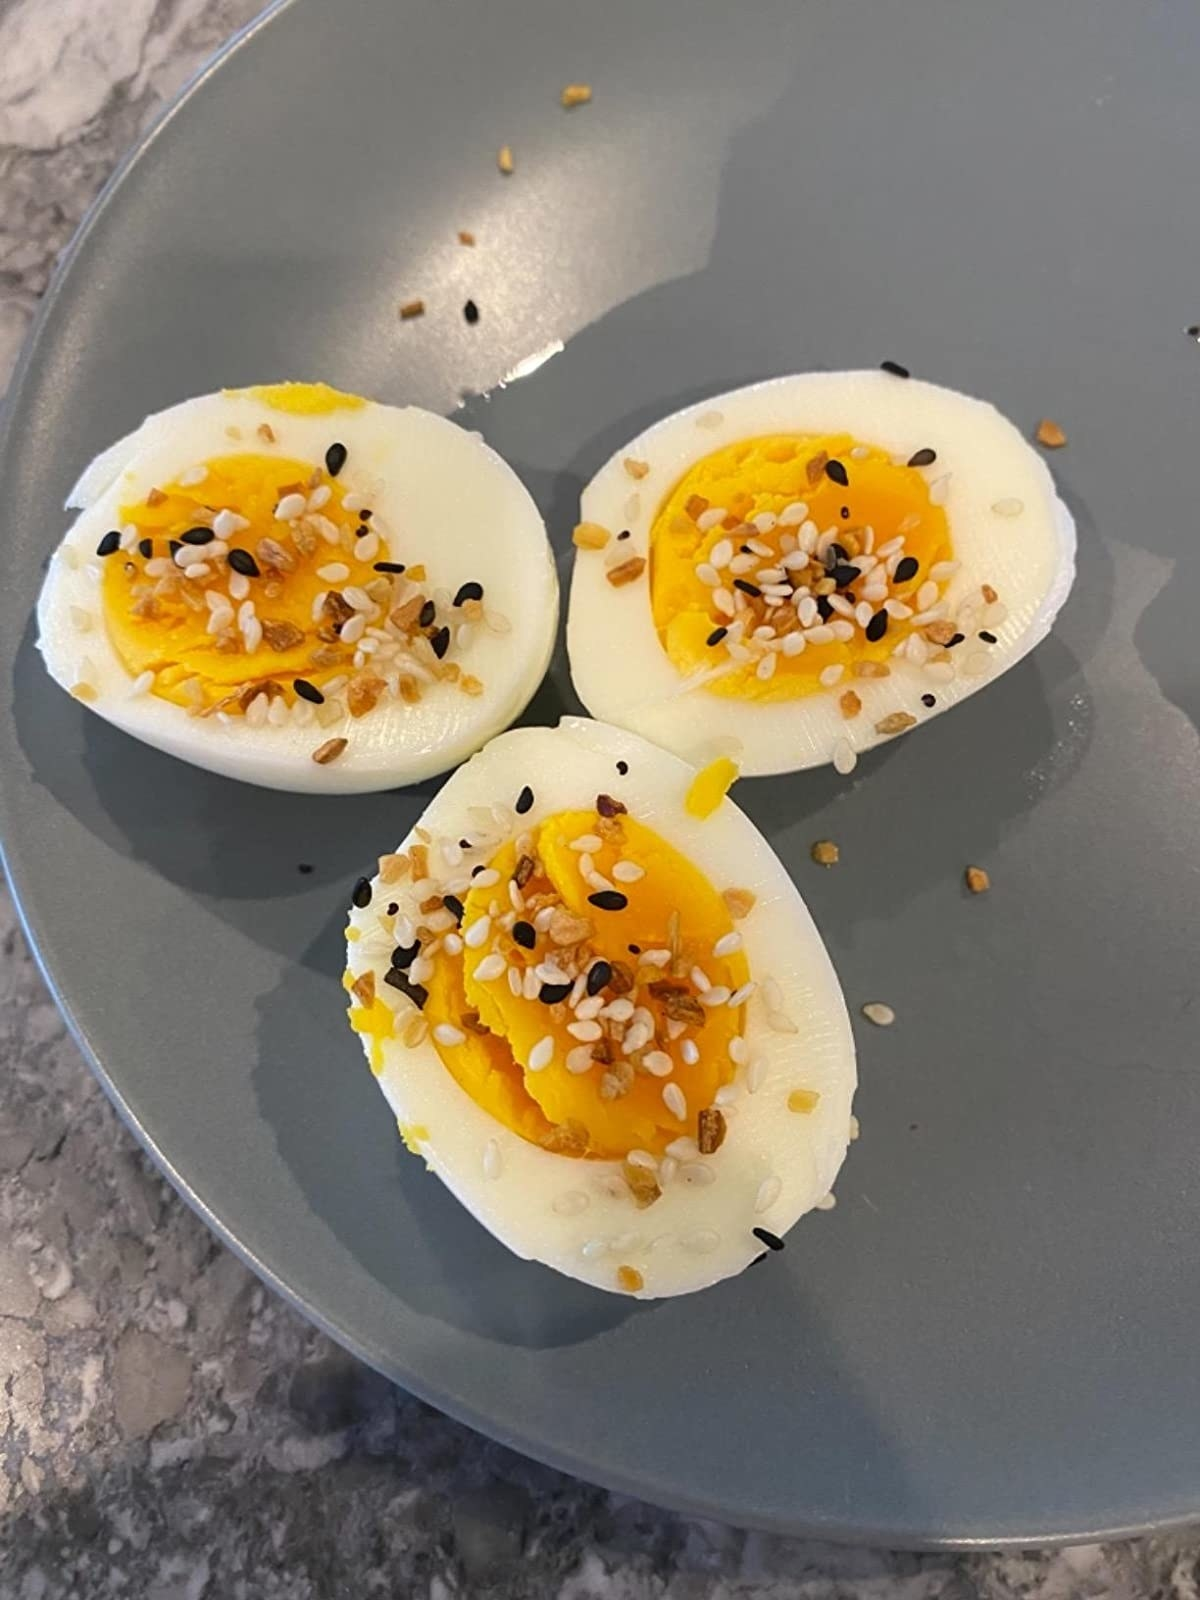 Reviewer's photo of three hard-boiled eggs with seasoning